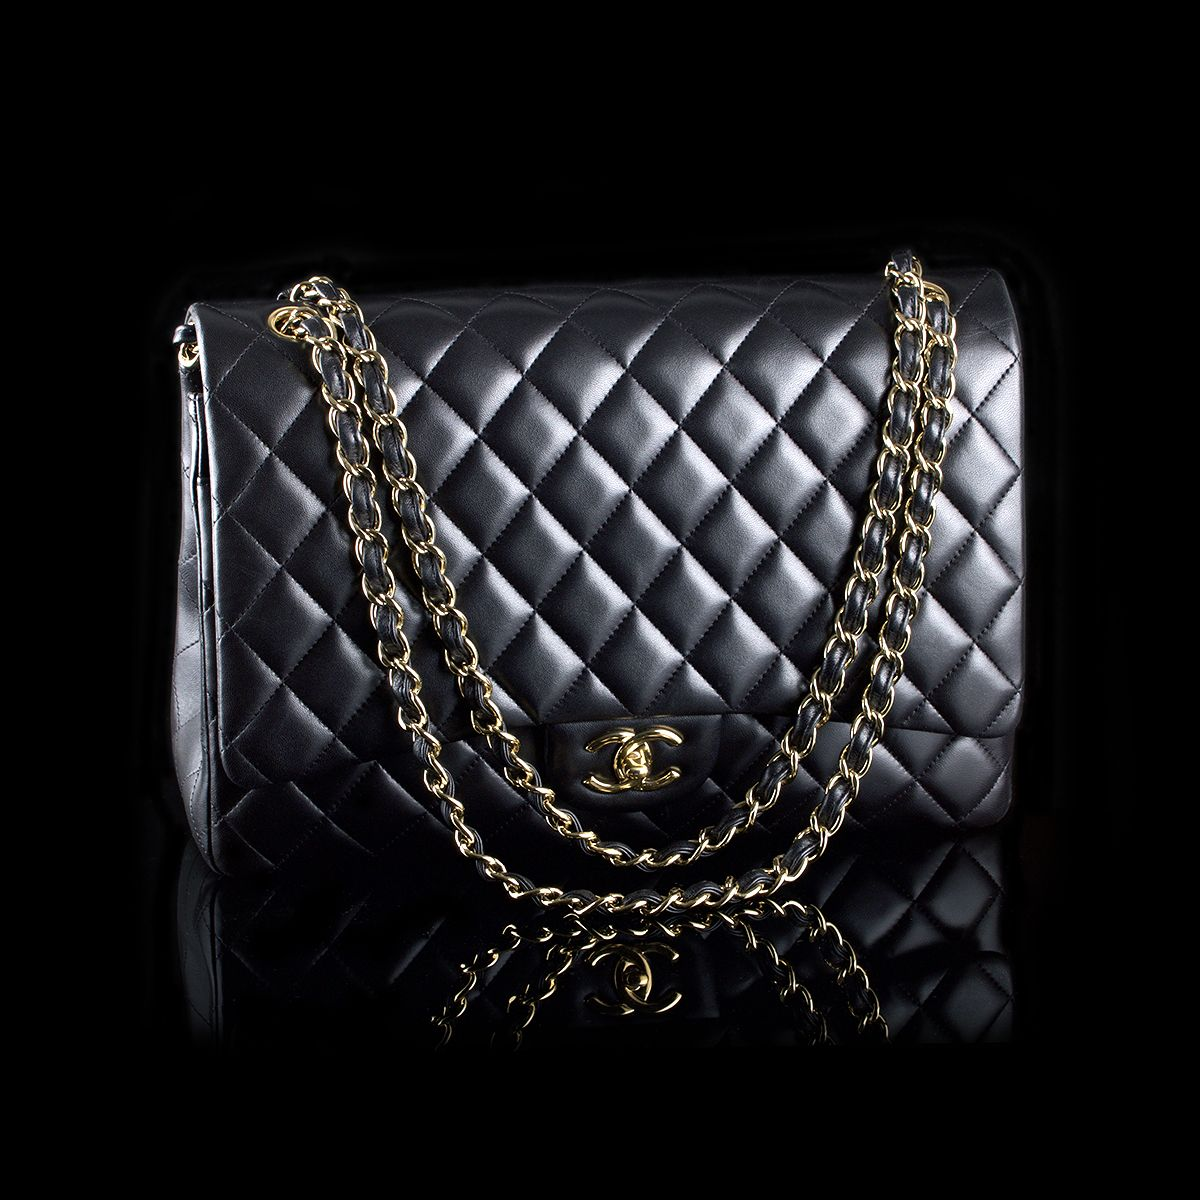 Sold Chanel Maxi Double Flap Black Lambskin Golden Hardware Chanel Maxi Bags Chanel